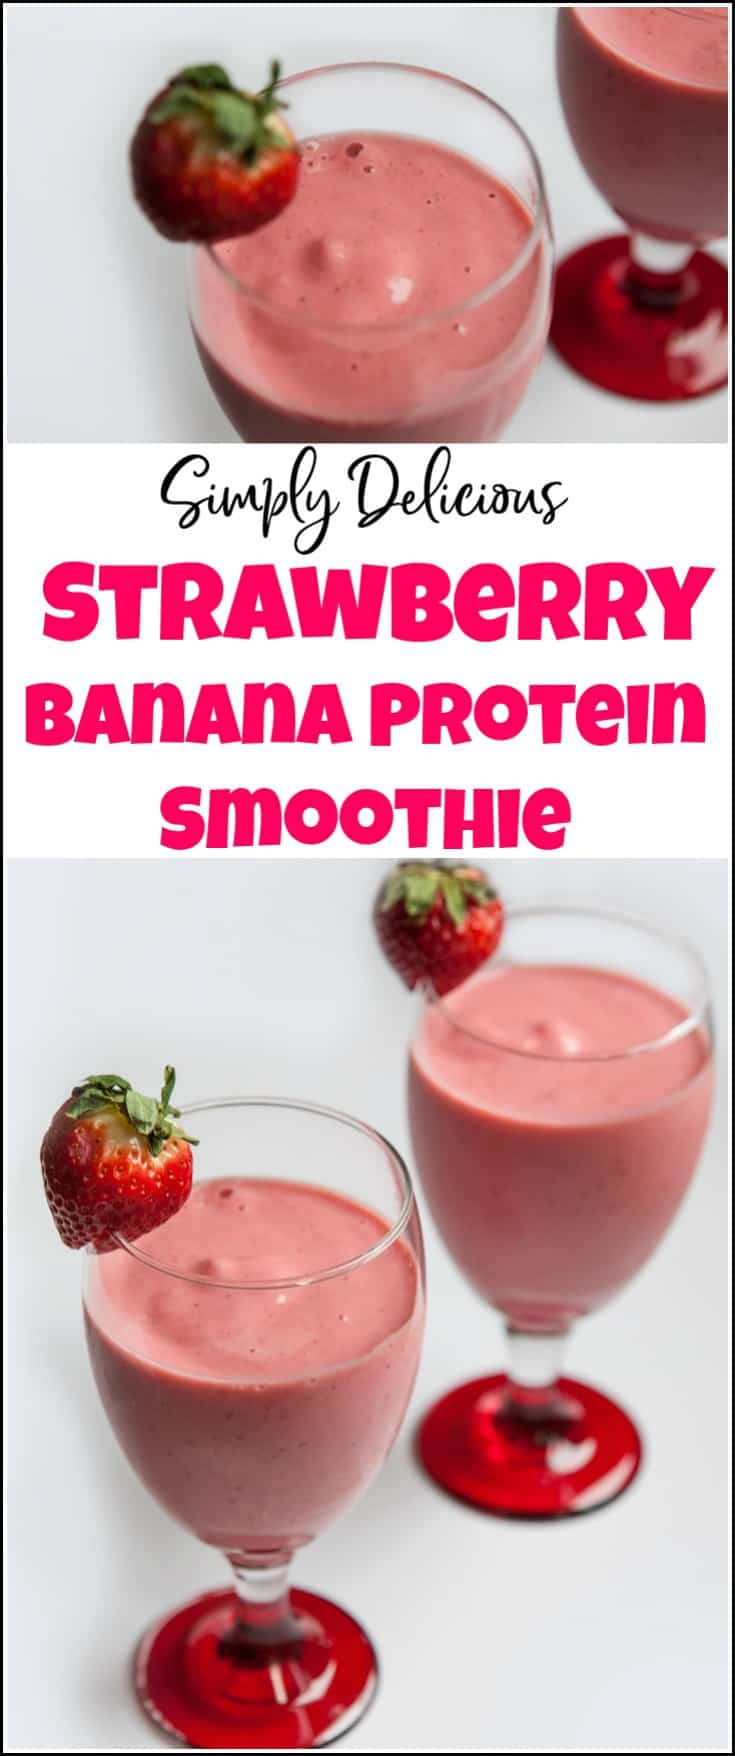 Enjoy this delicious strawberry banana protein smoothie for a snack or breakfast. Healthy and delicious smoothie with protein. This protein fruit smoothie is sure to please your taste buds. strawberry banana protein shake, strawberry protein smoothie, strawberry protein shake recipe, protein smoothie recipe.